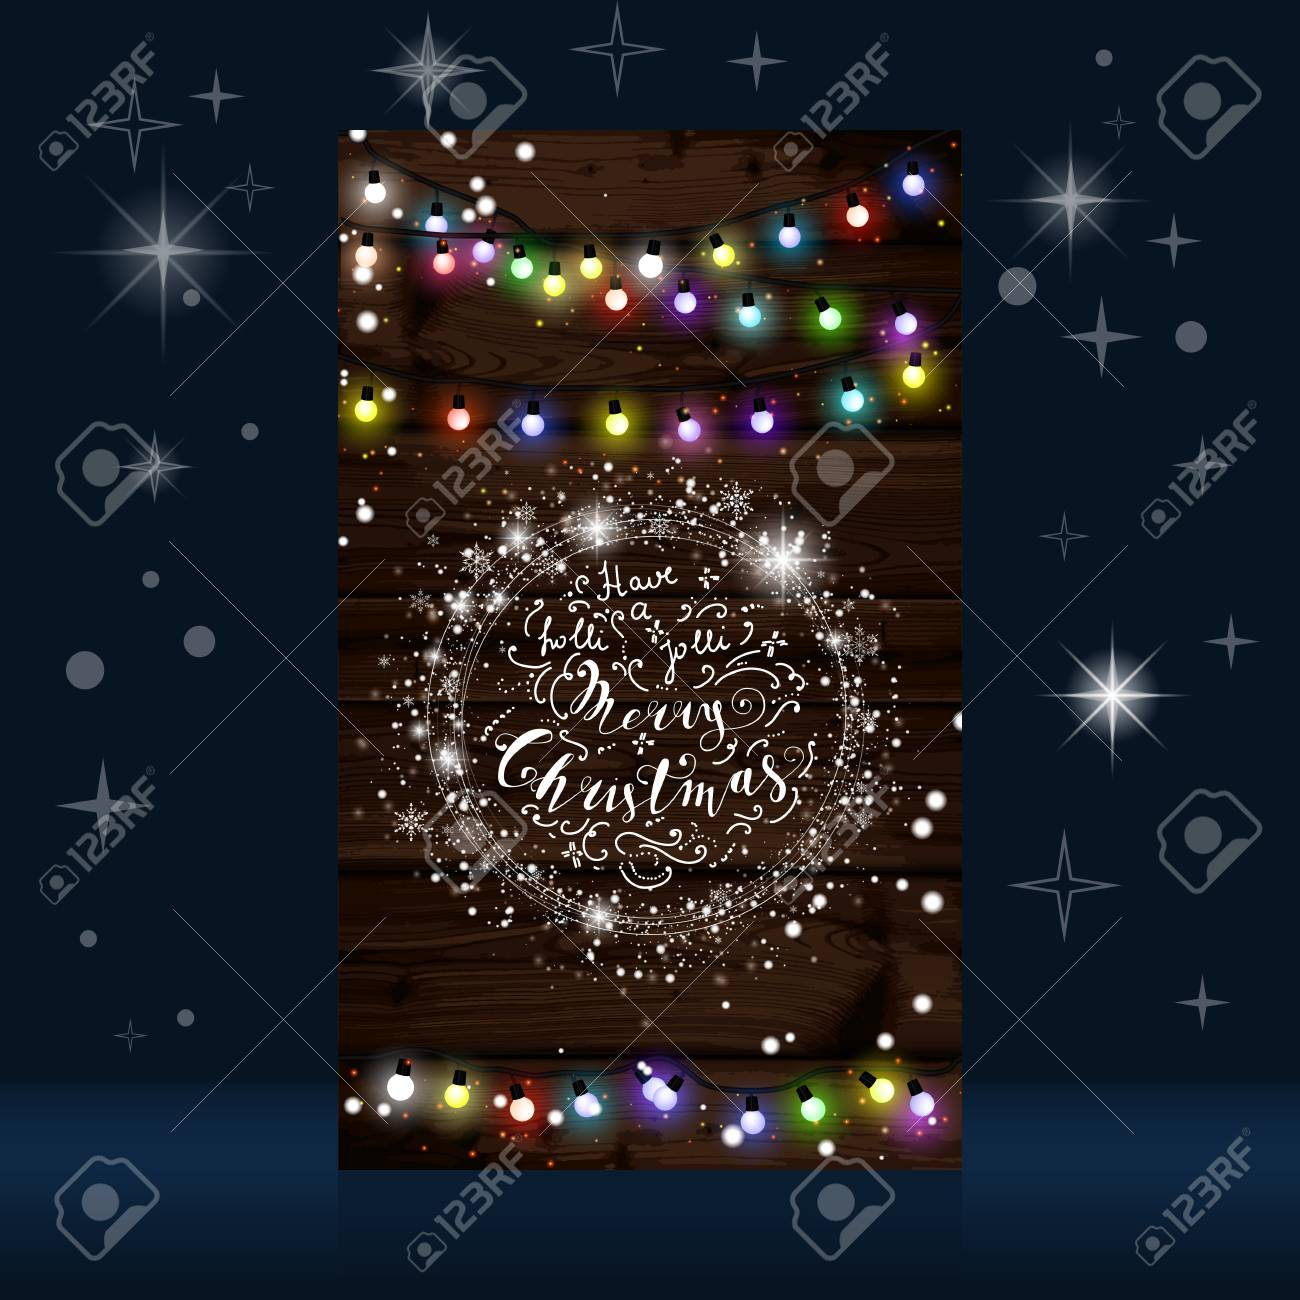 Christmas Lights Poster With Shining And Glowing Garlands On